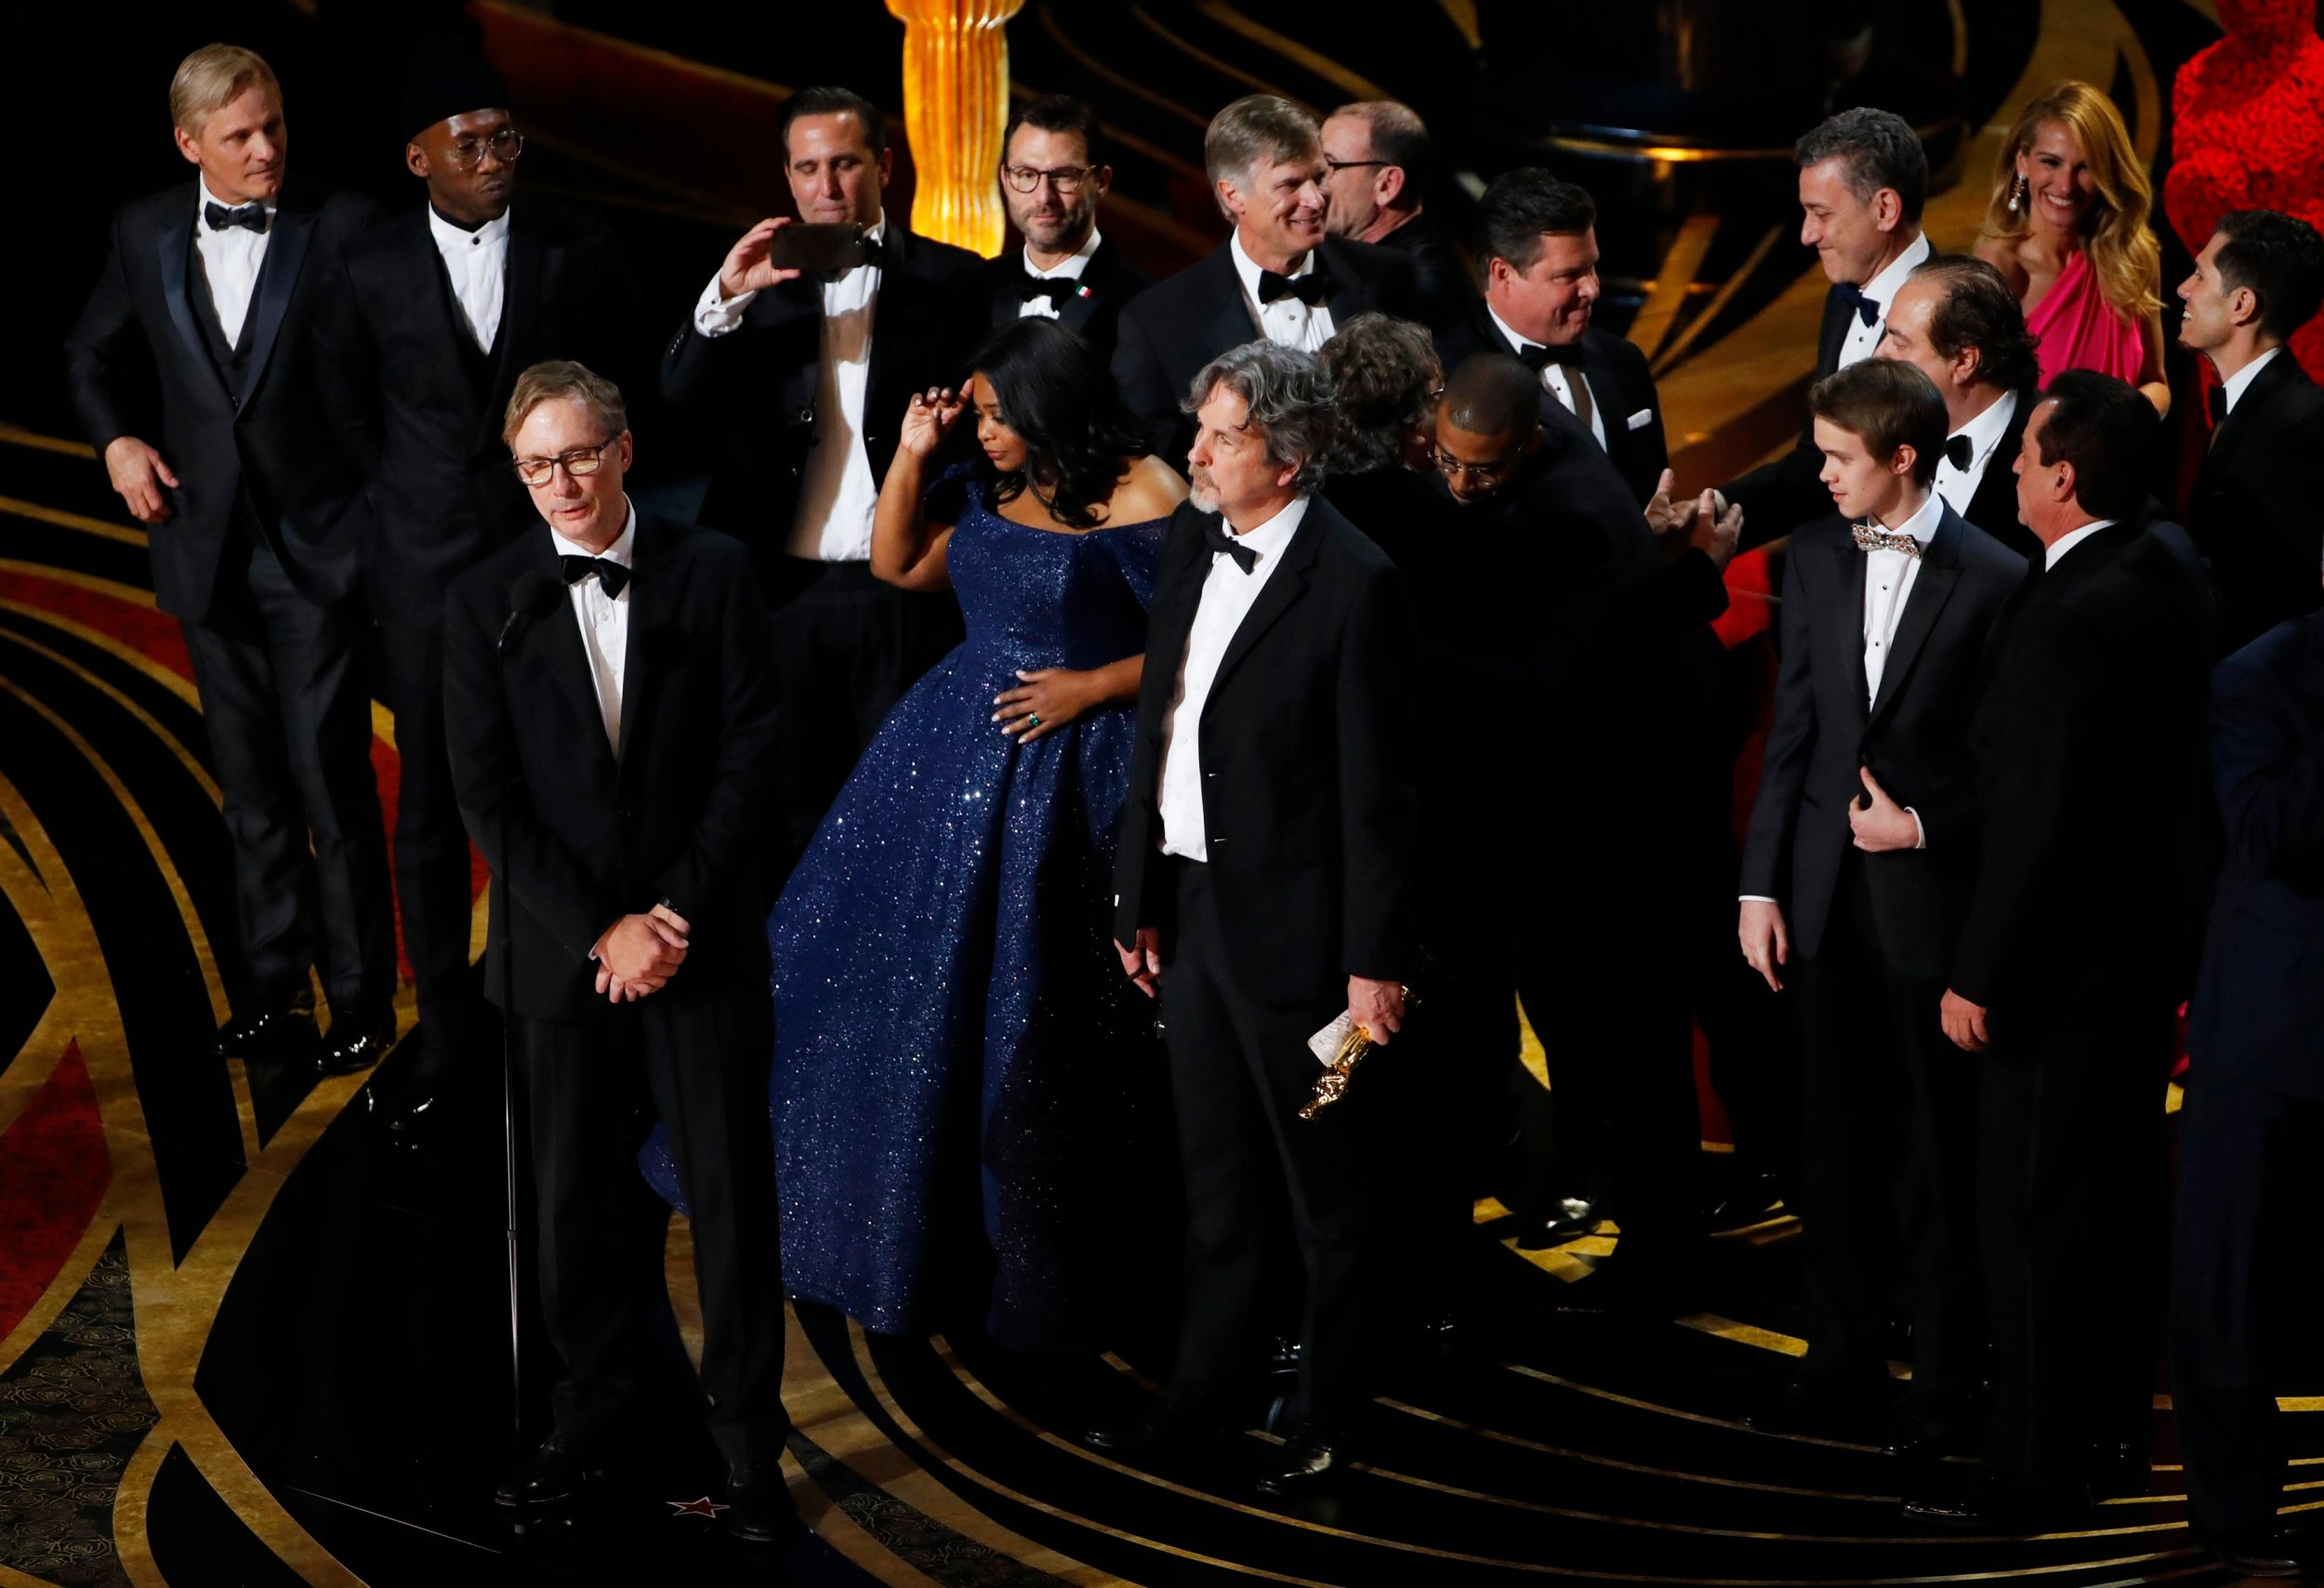 The Best Picture award for Green Book